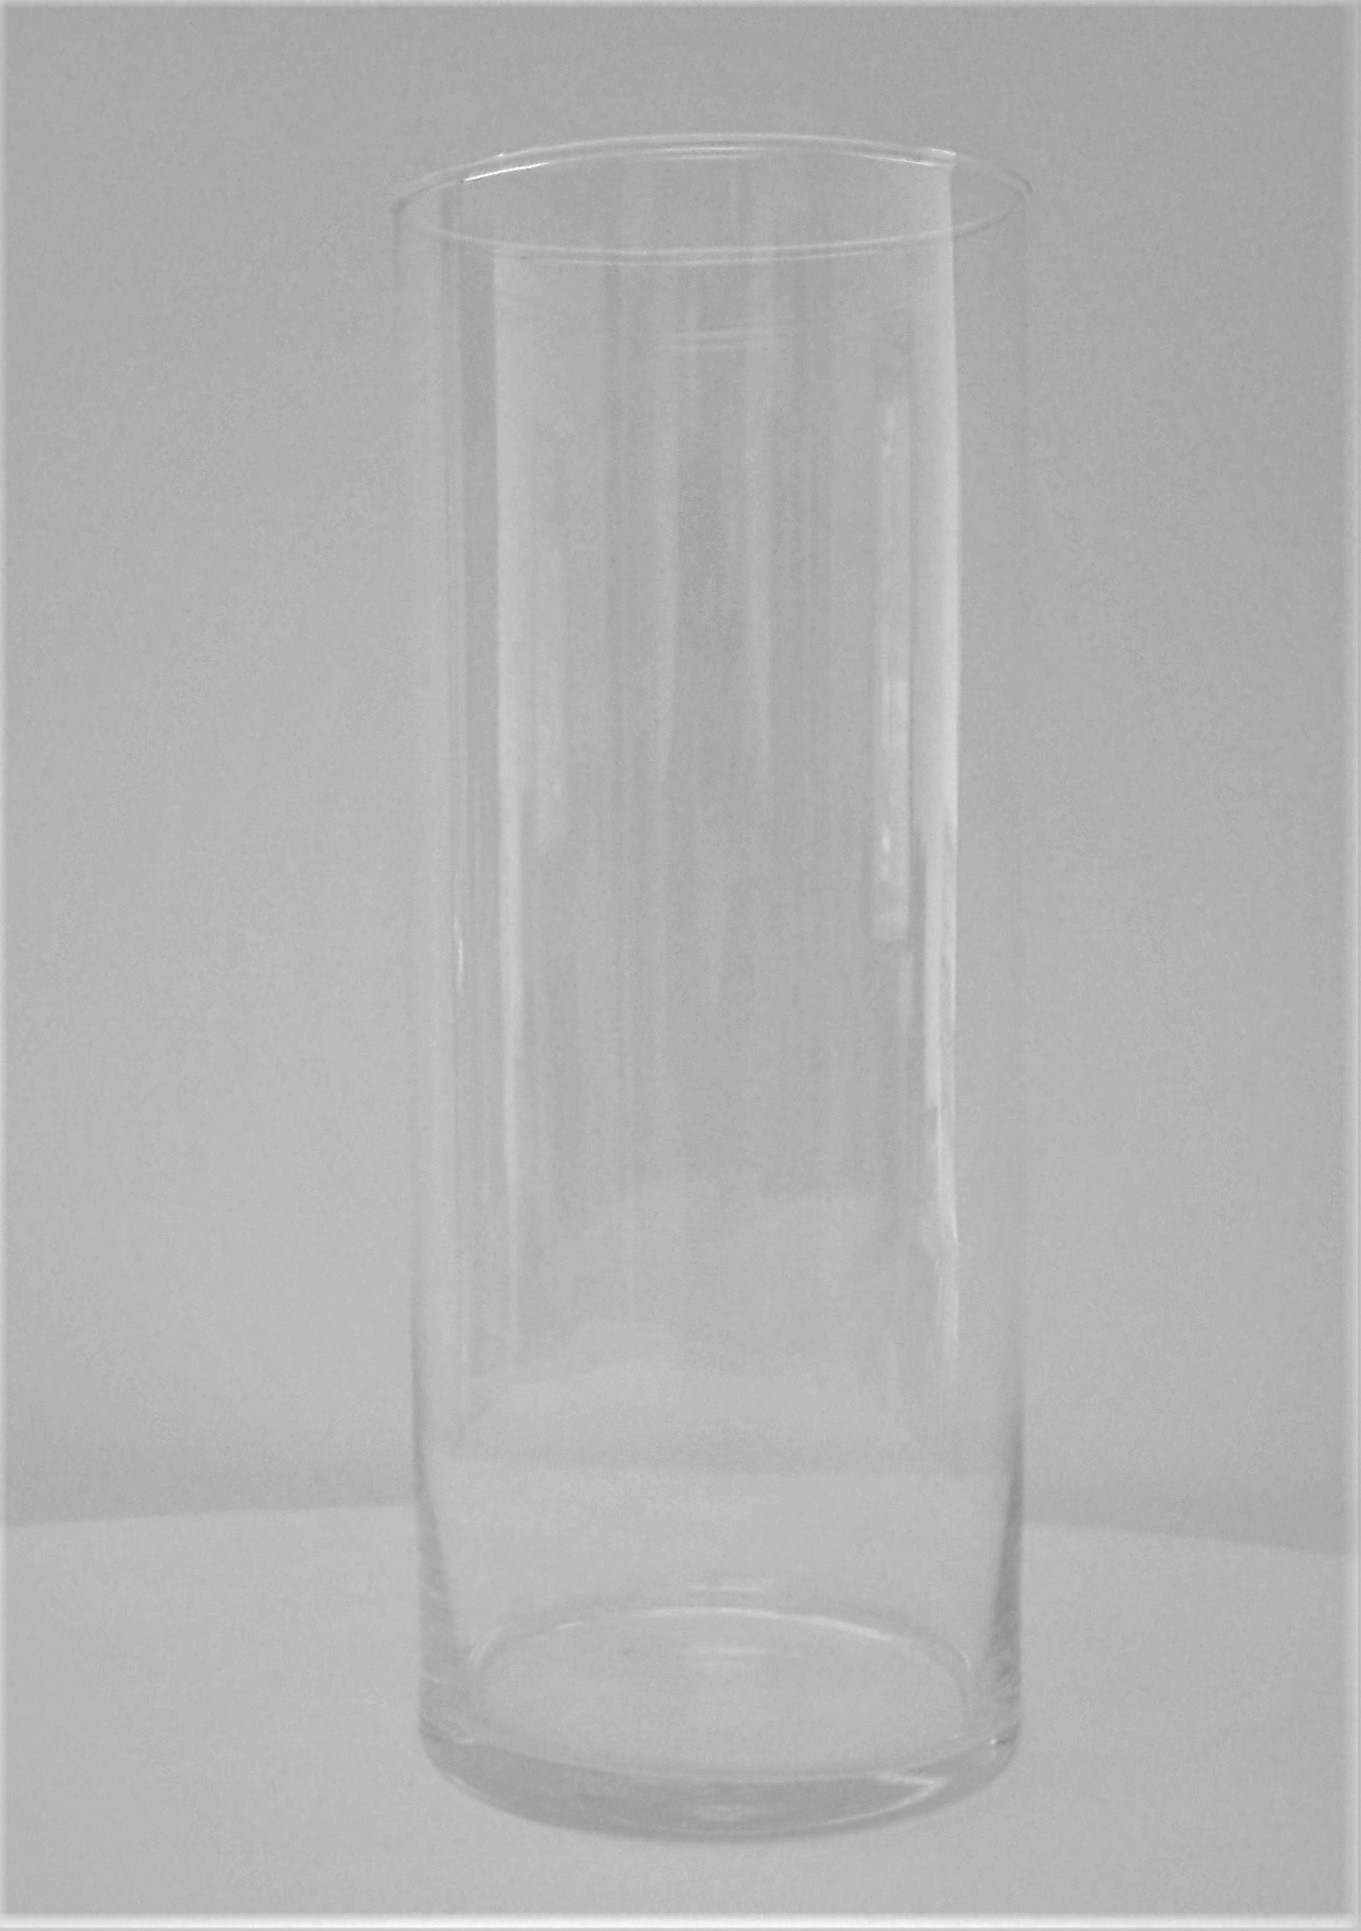 Location vase cylindrique H30 - 2.90€ tarif weekend